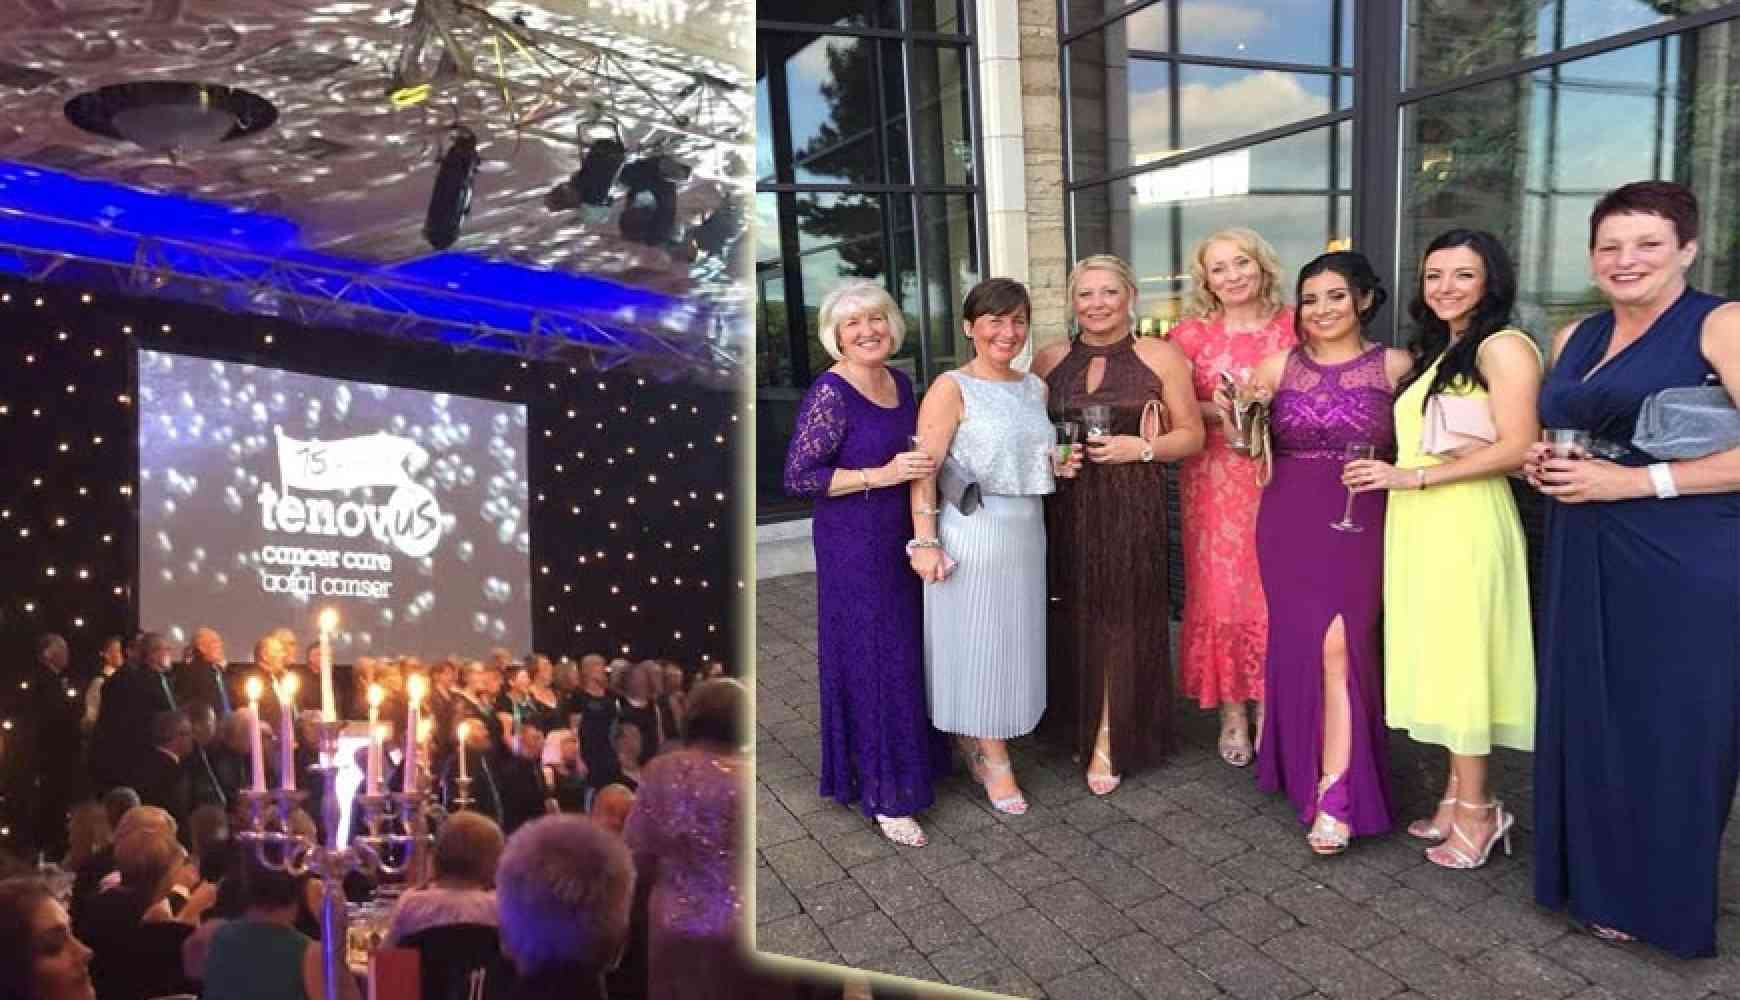 WG Davies Ladies Attend the Tenovous Charity Ball